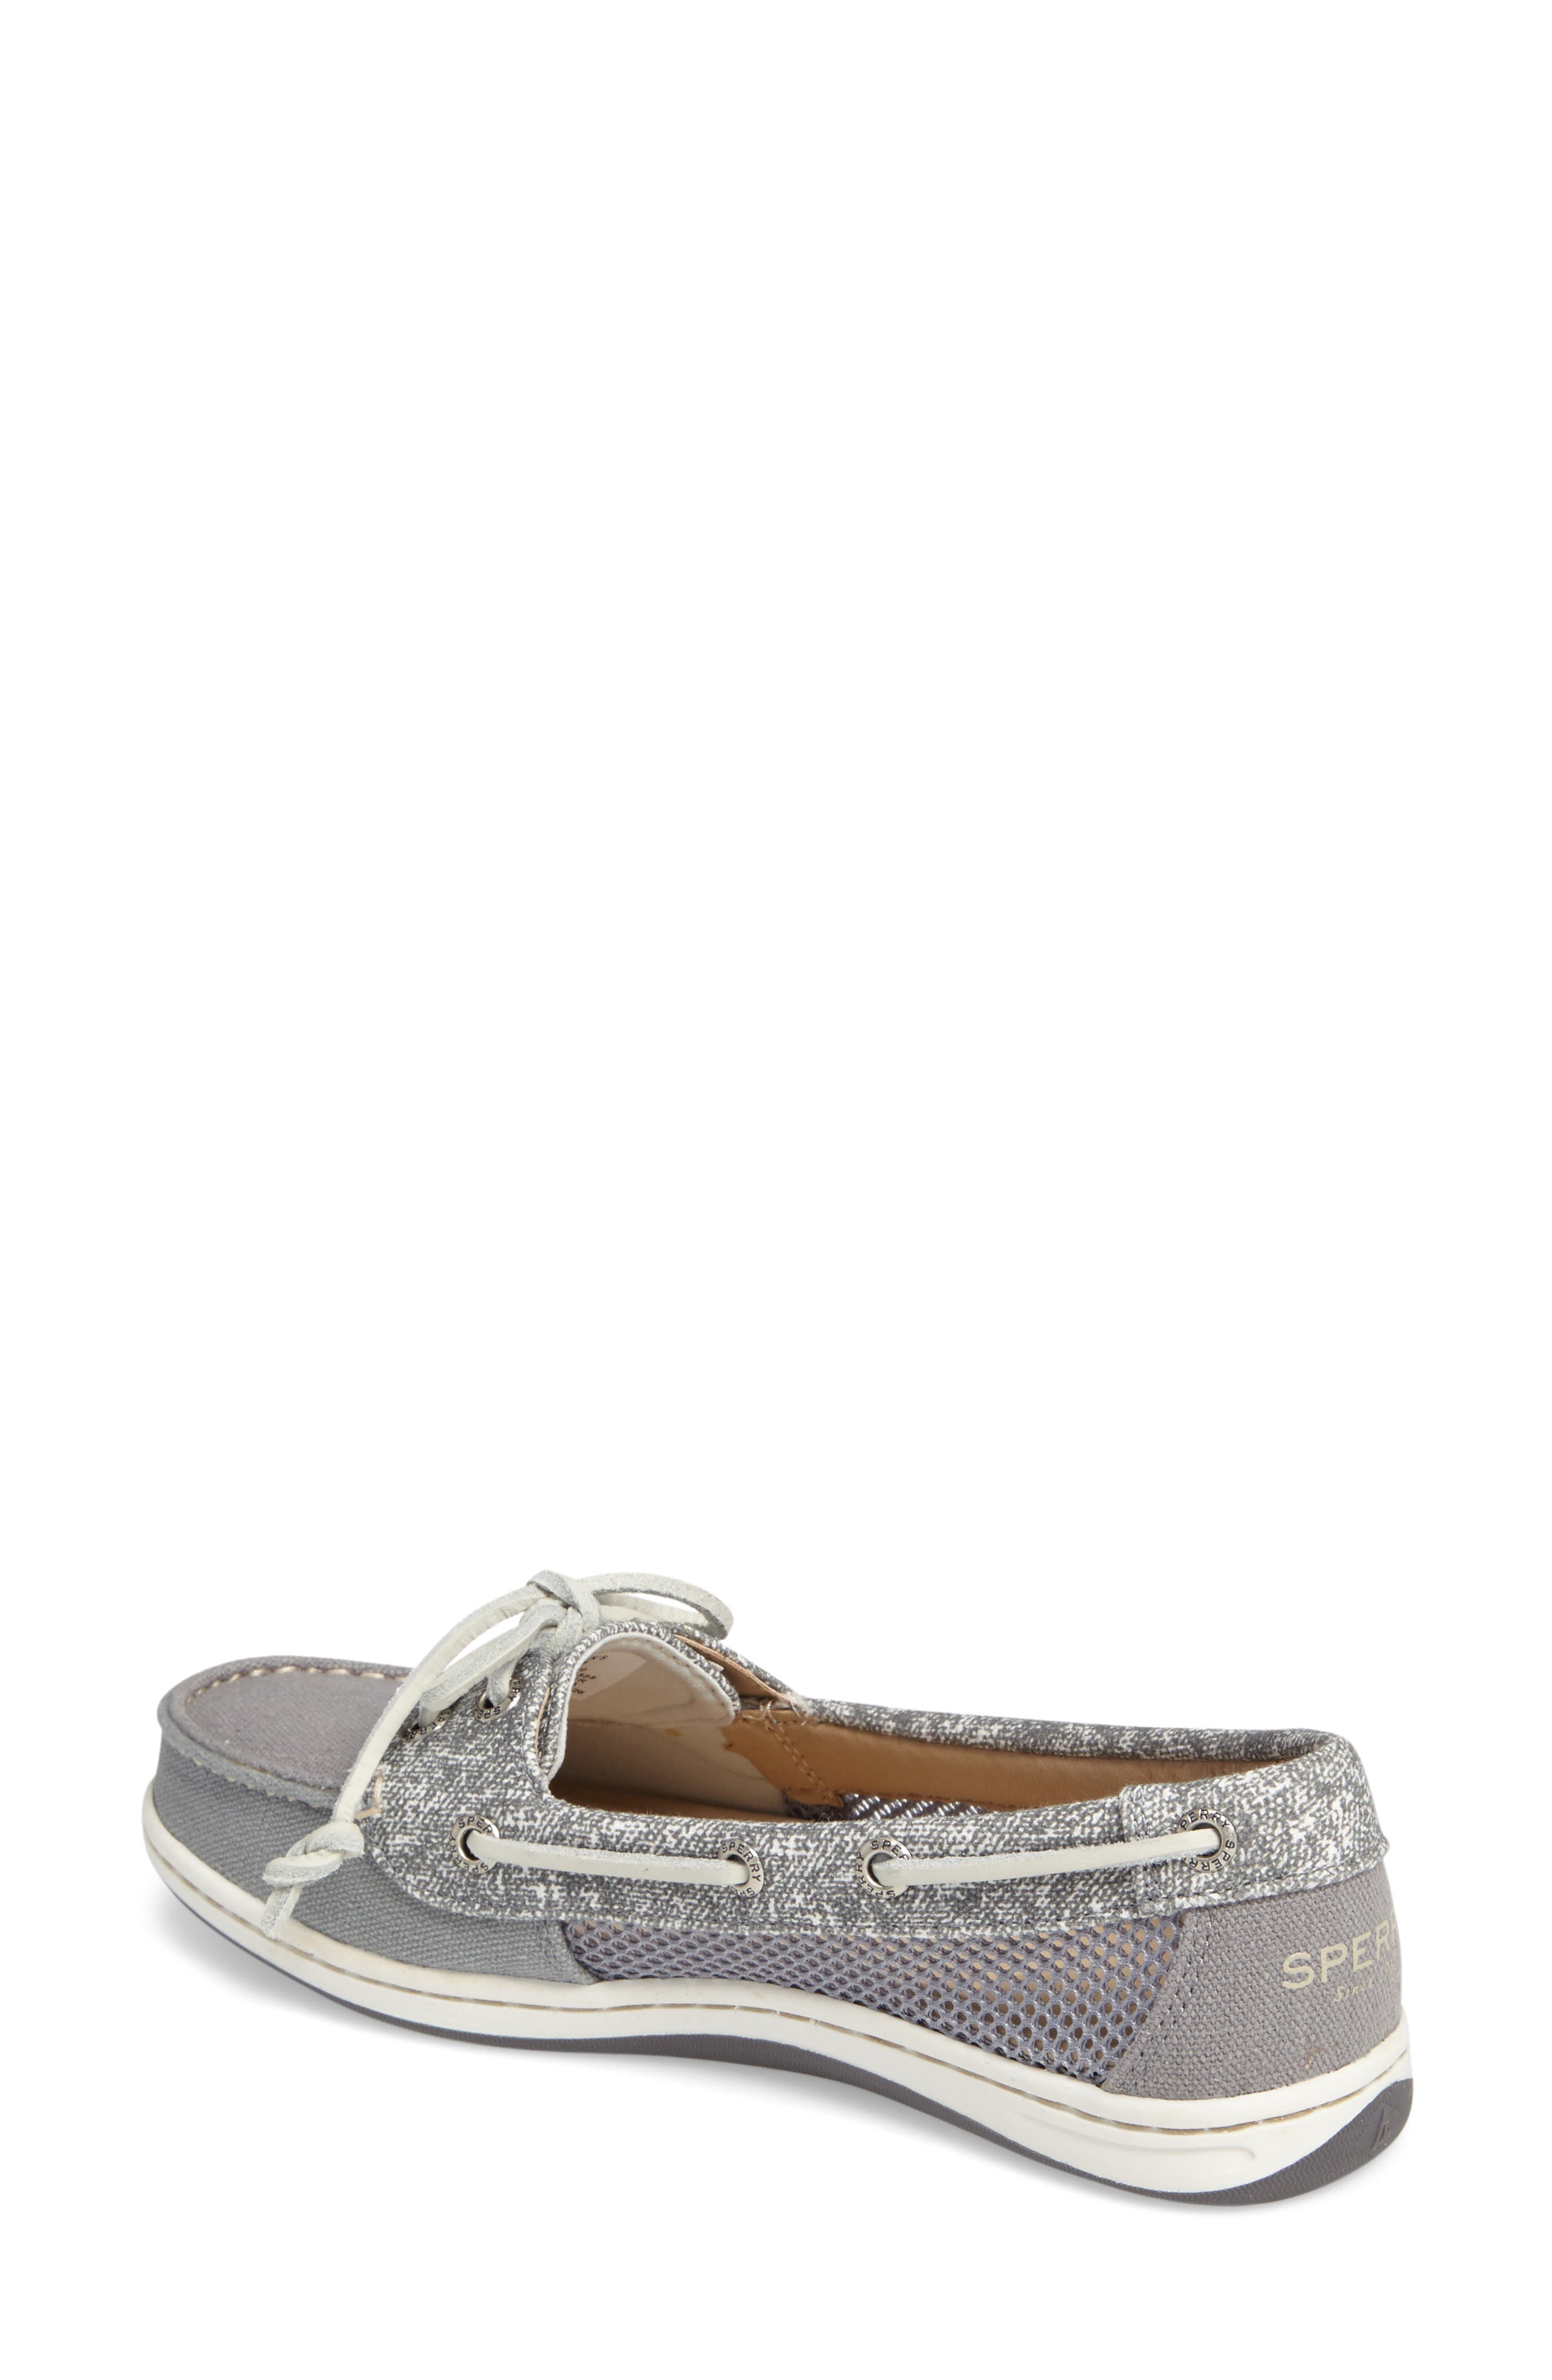 'Firefish' Boat Shoe,                             Alternate thumbnail 13, color,